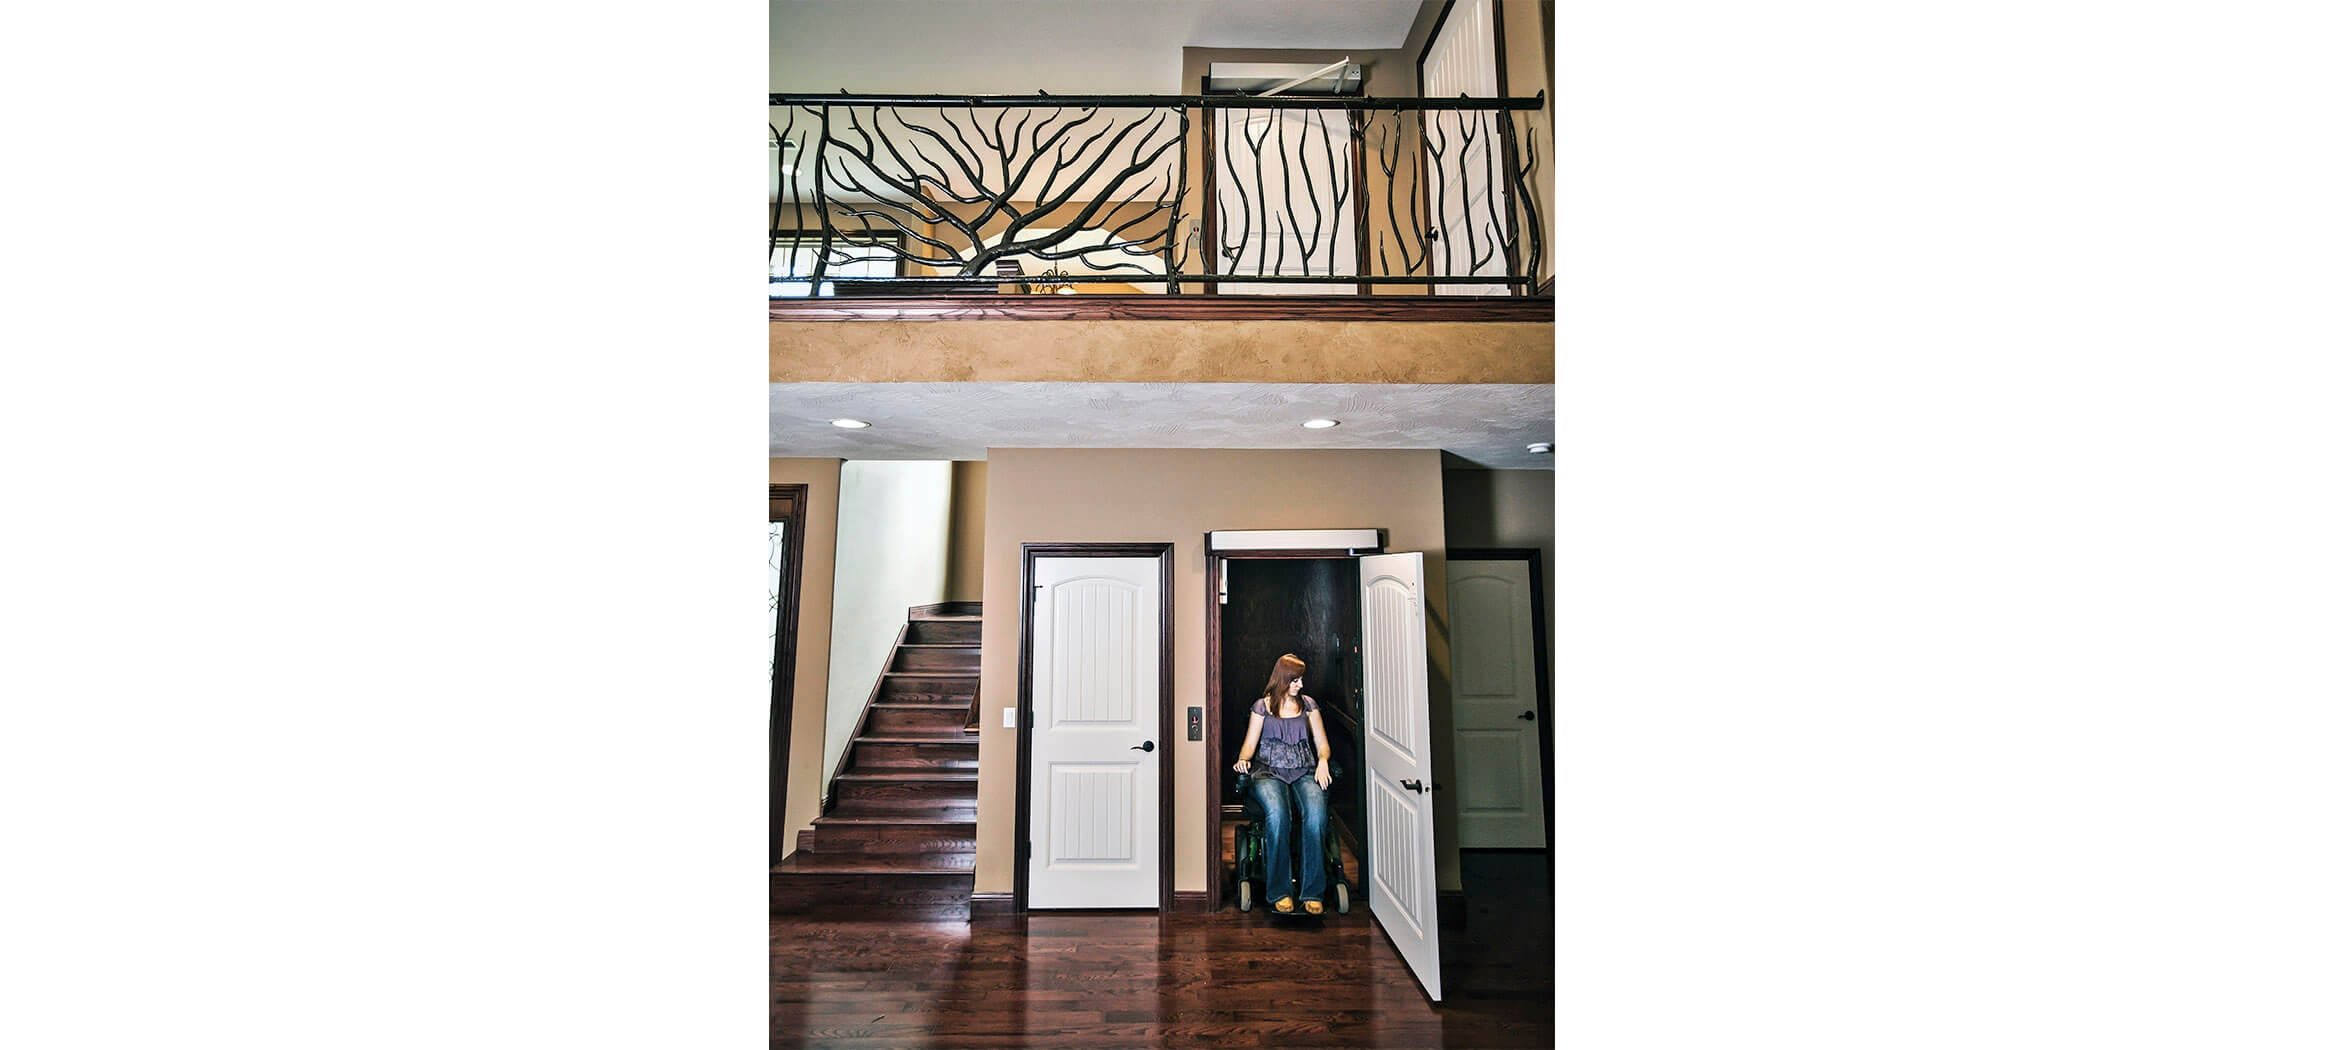 Choosing a Place for Your Home Elevator Installation